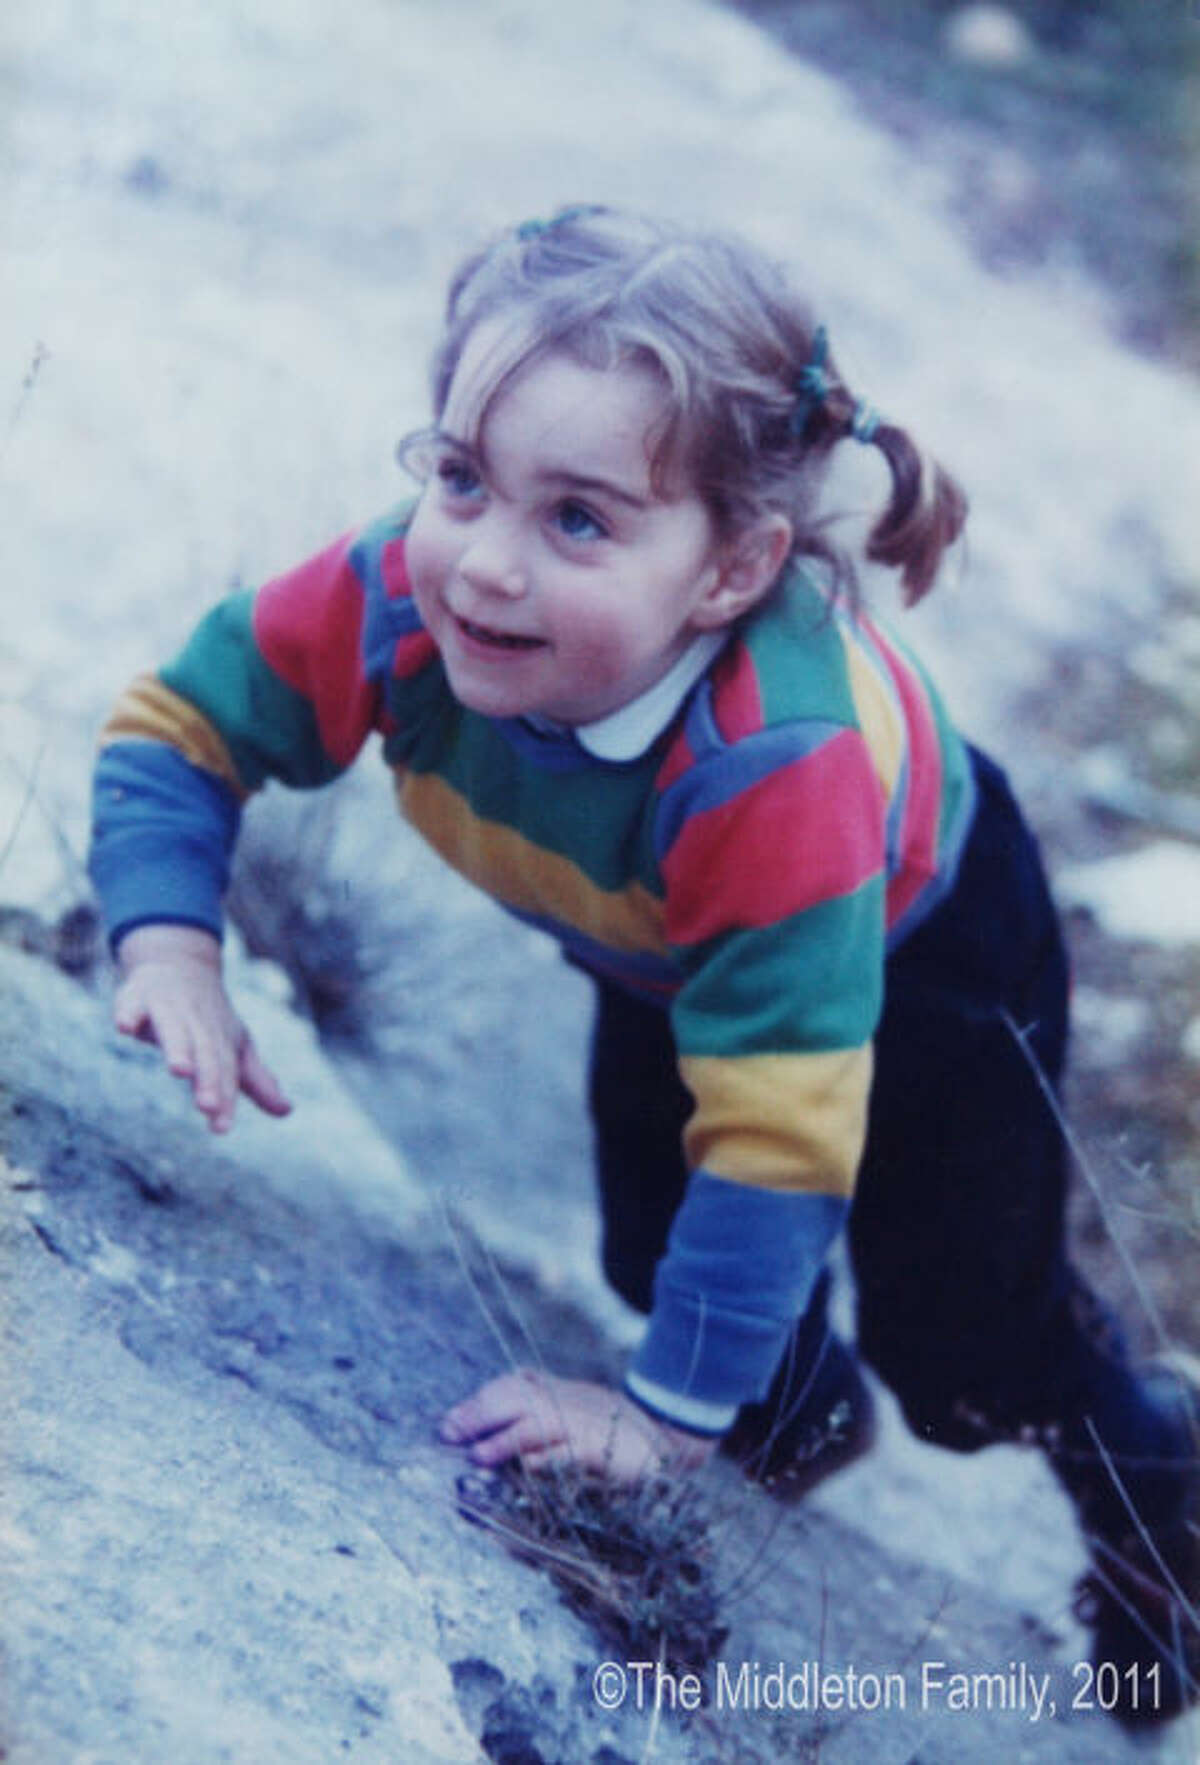 1985: A Happy Childhood On the go! Kate Middleton, 3, perfects her climbing while on a family holiday in the Lake District.